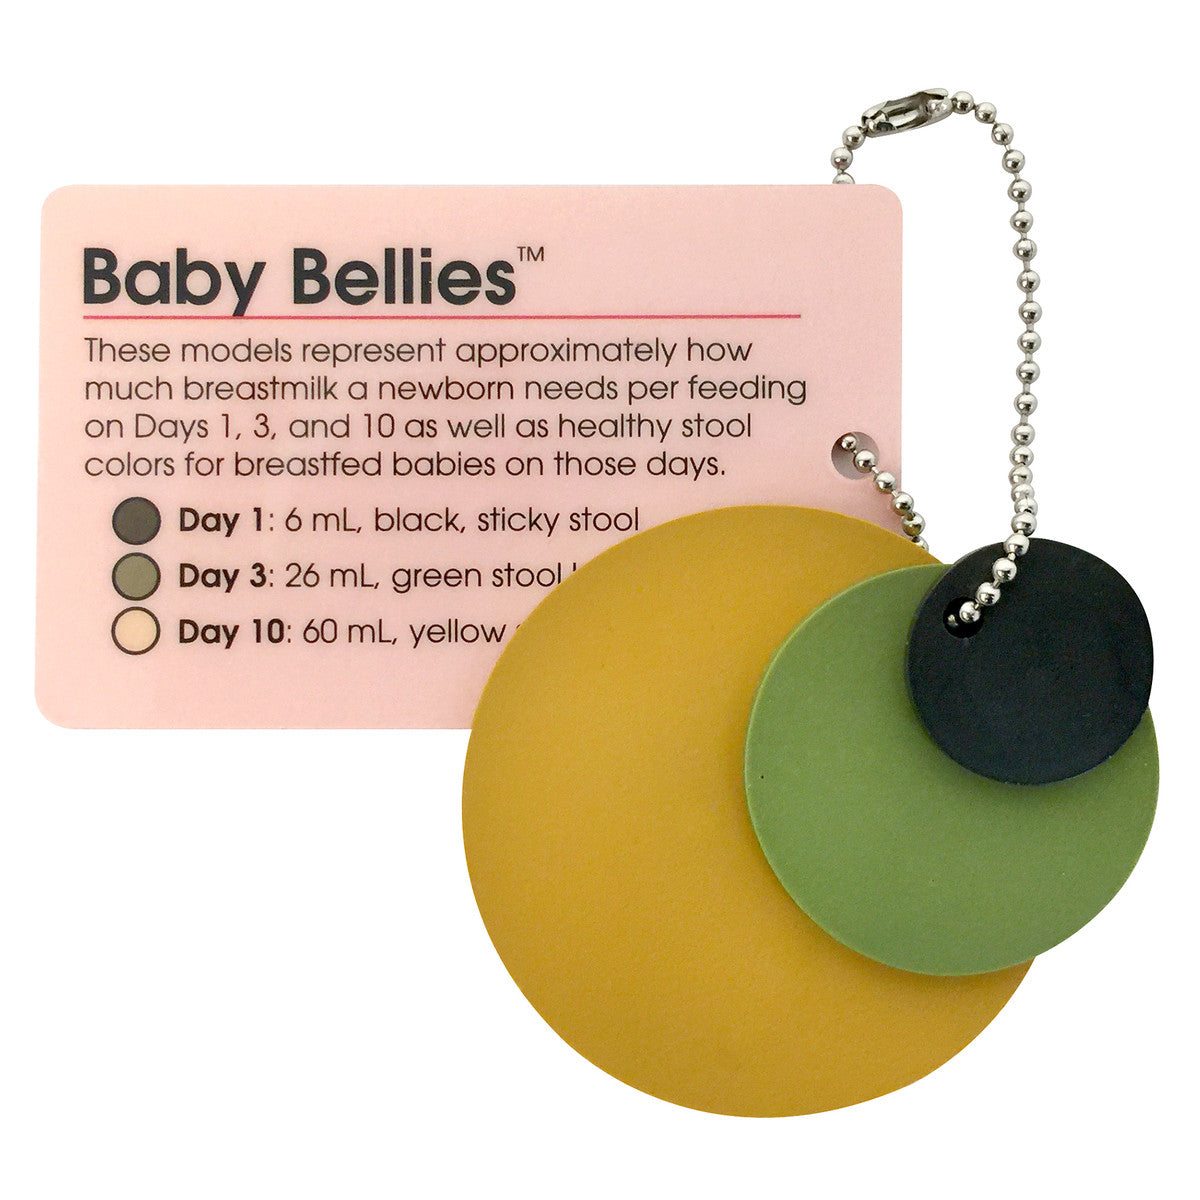 Baby Bellies Keychain Display